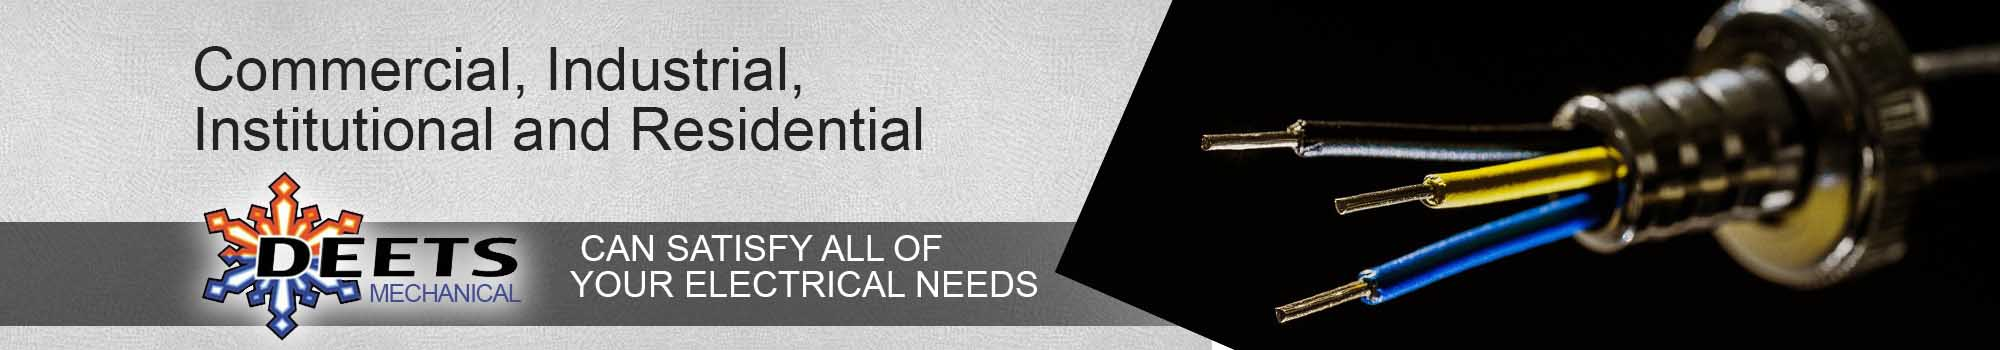 Deets Mechanical, Inc. specializes in Commercial, Industrial, Institutional & Residential Electrical service in Seneca PA.